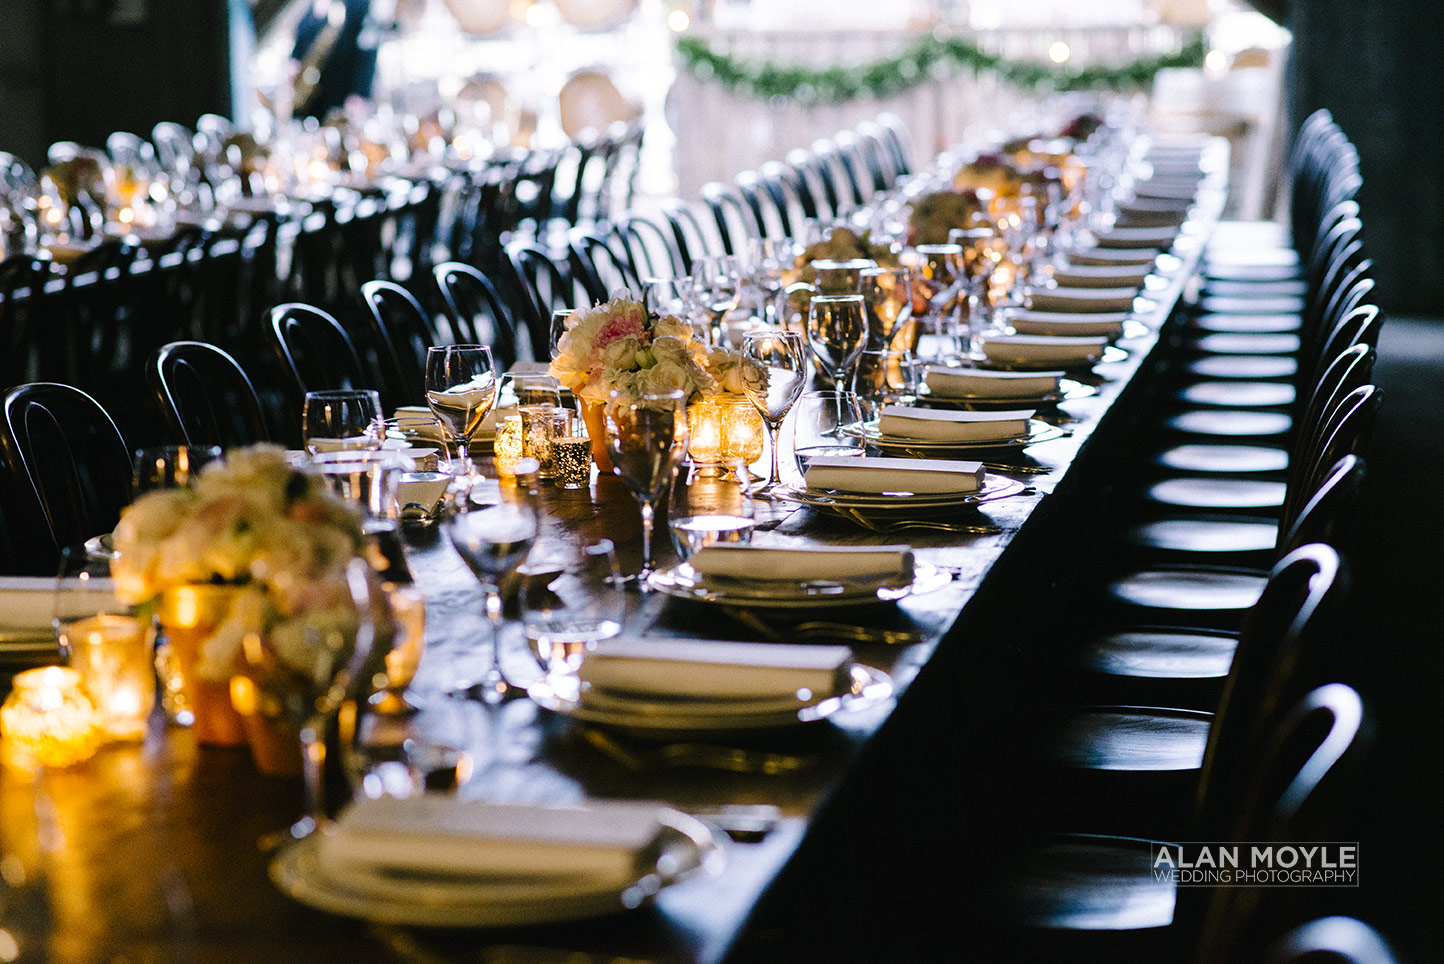 1405austin-286weddings_of_desire_melbourne_styling_event_geelong_alan_moyle_vineyard_winery_caligraphy_laura_sprout_hire_bayside.jpg